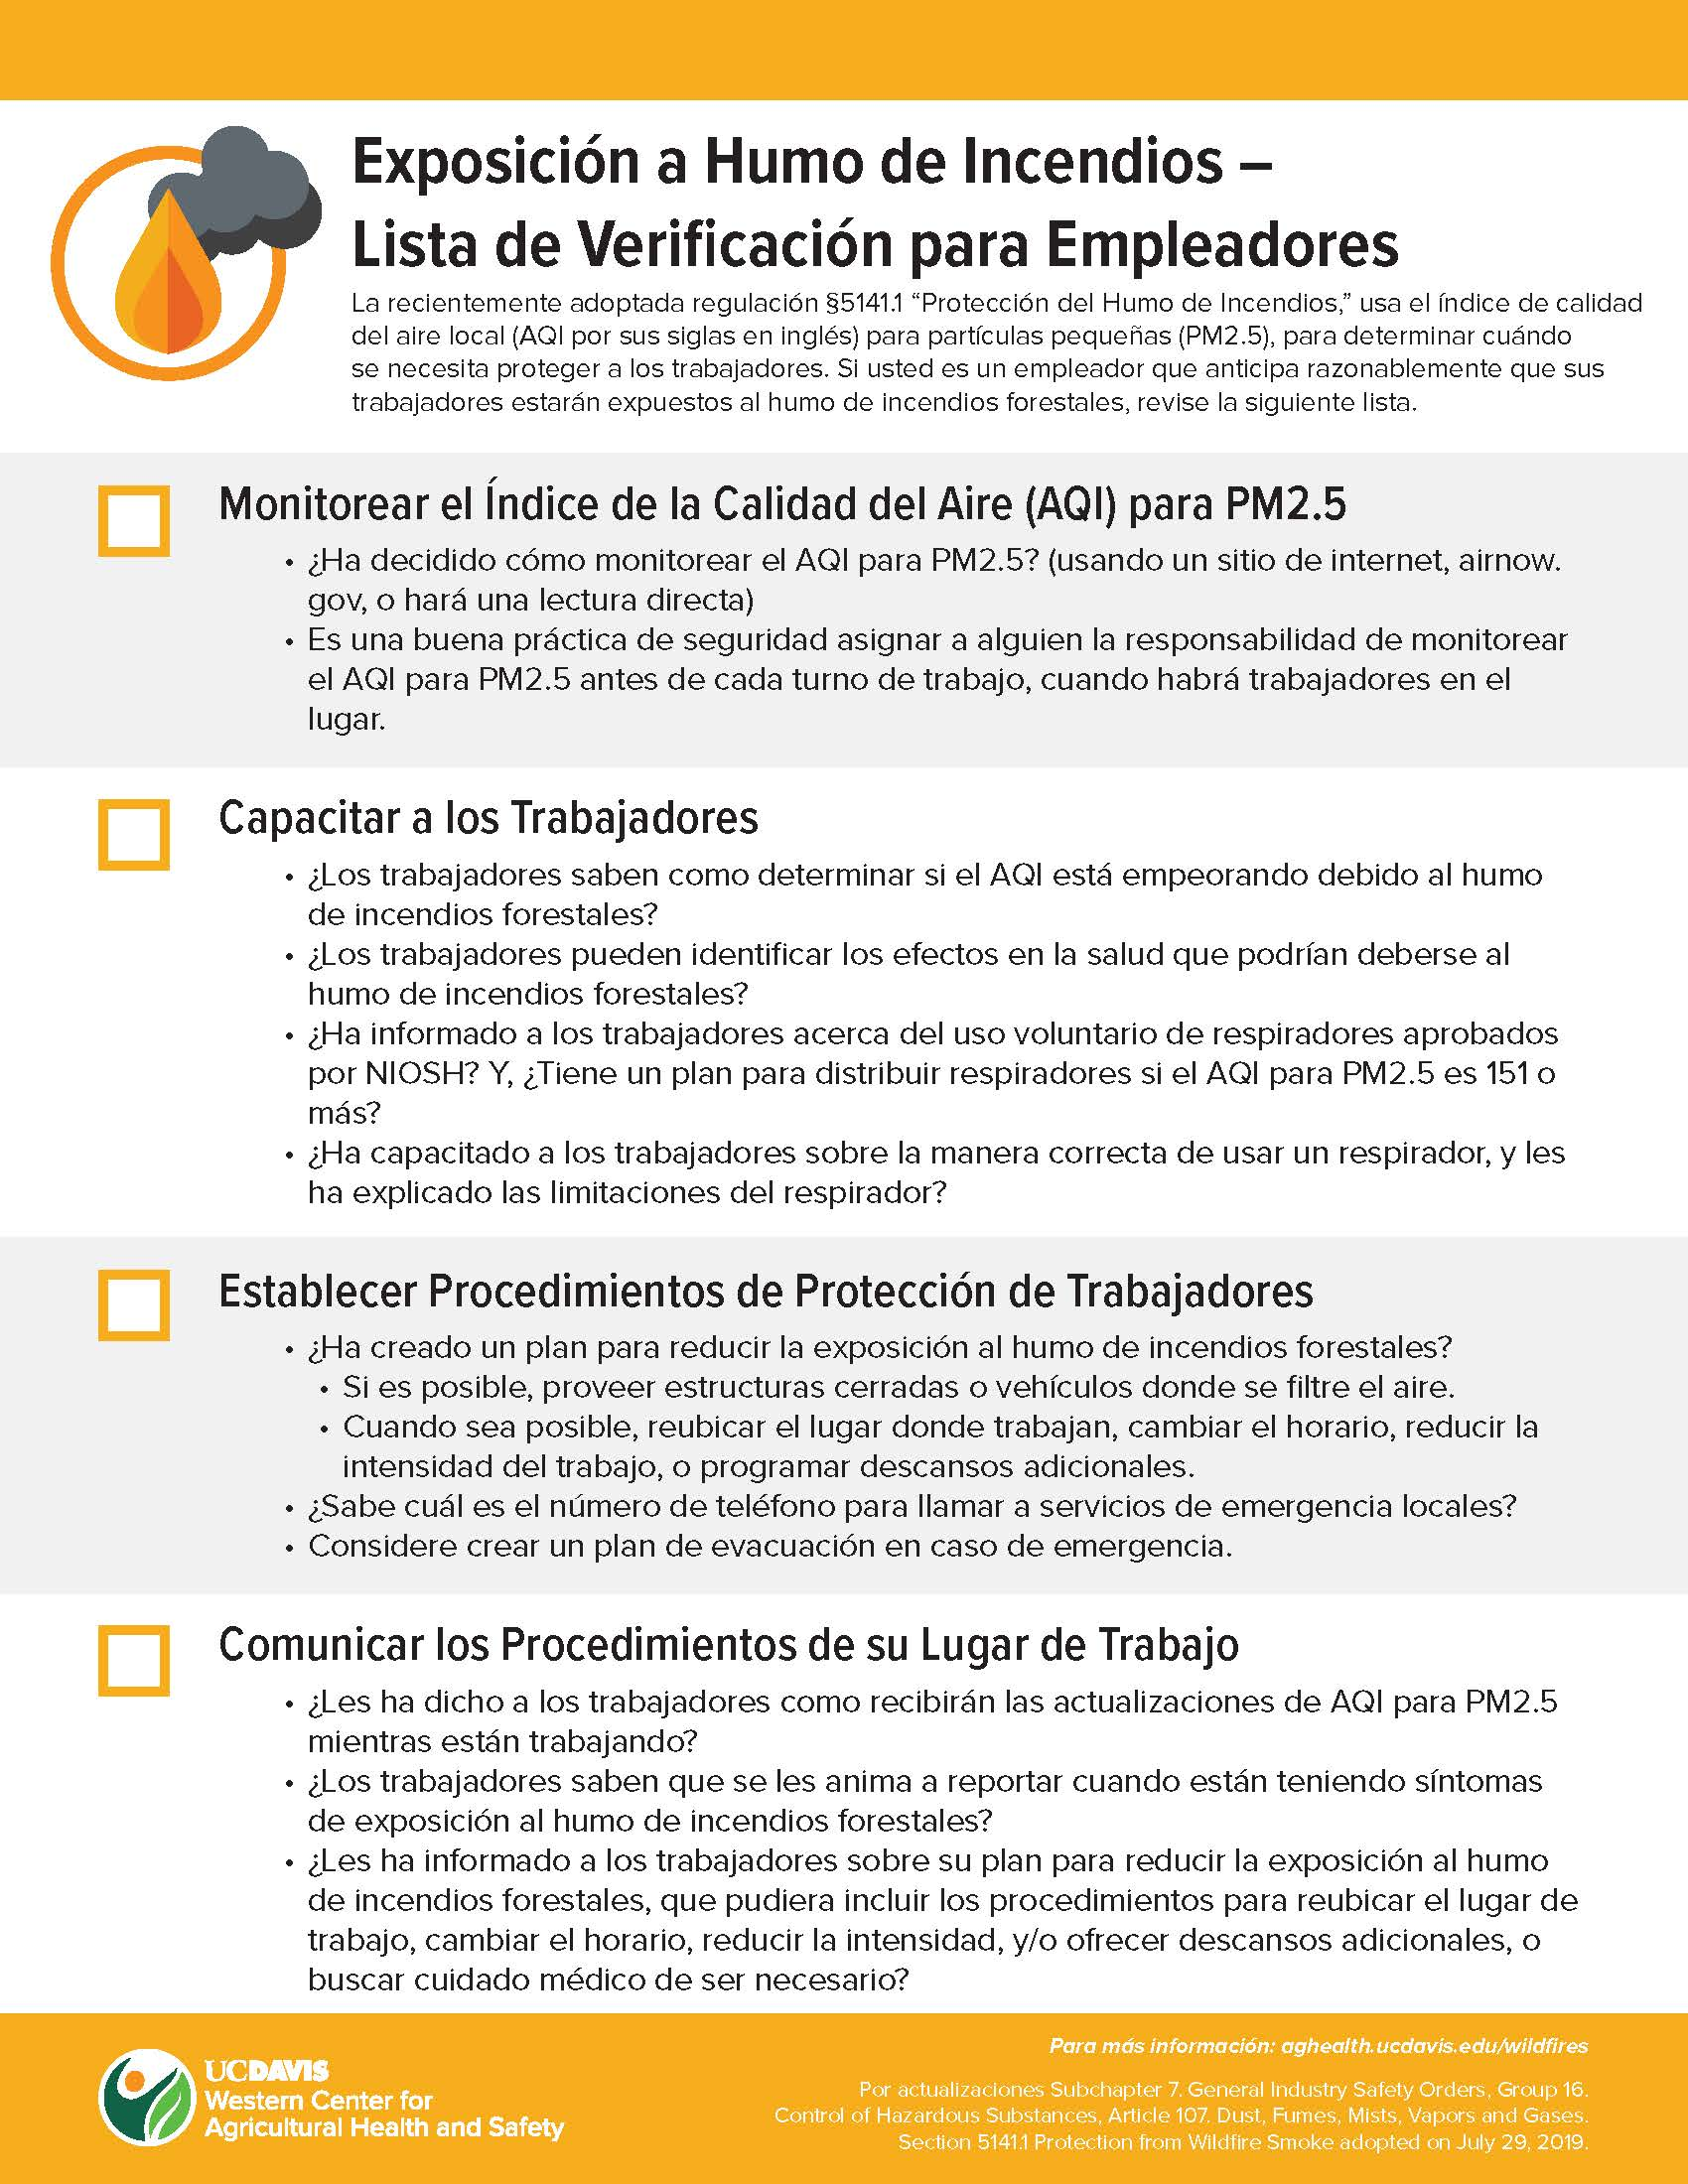 Employer Checklist Spanish